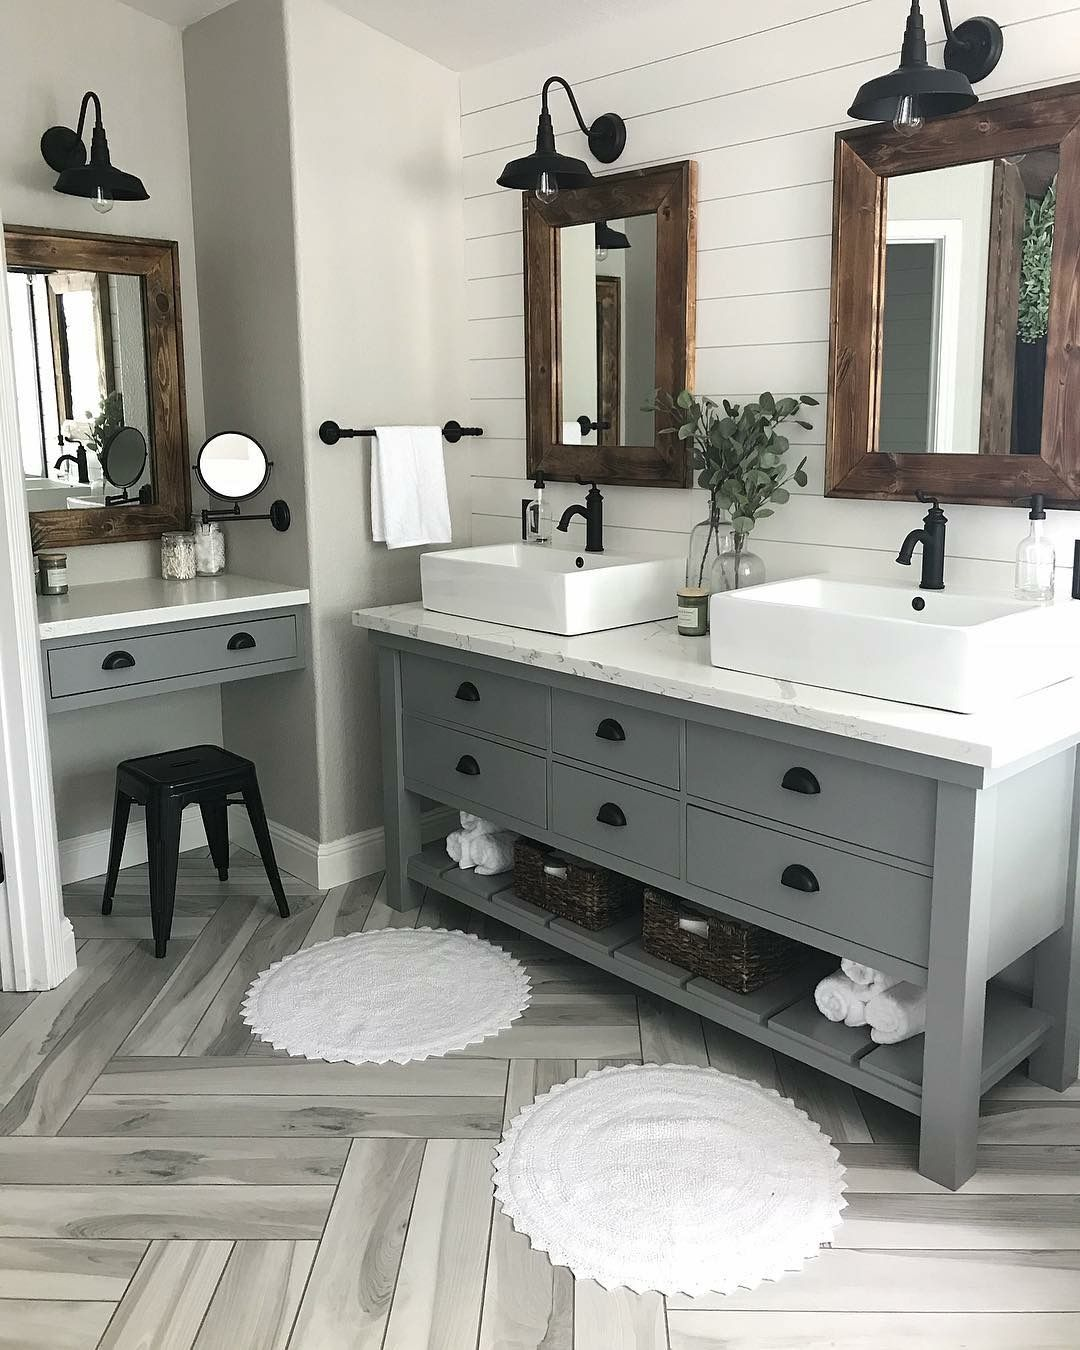 Love Mirrors And Double Sink Setup And Variety Area Maybe Cabinet Color Change Farmhouse Master Bathroom Bathroom Remodel Master Master Bath Renovation